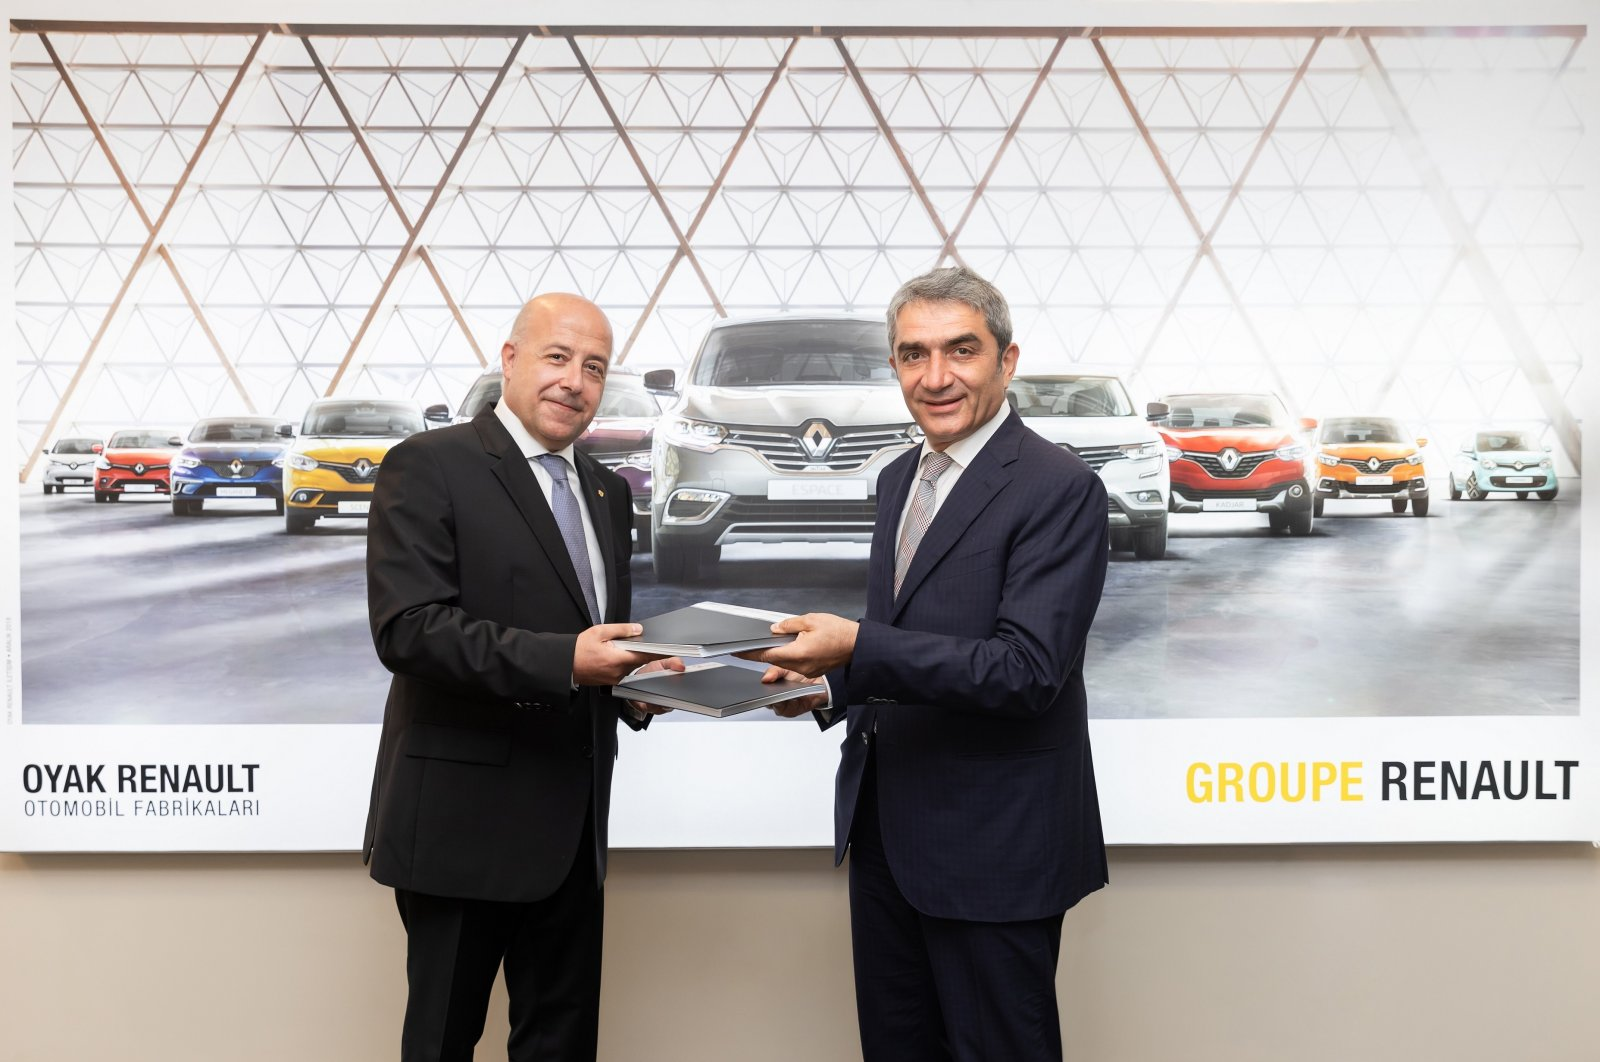 Oyak Renault General Manager Antoine Aoun (L) and Karsan CEO Okan Baş during the signing ceremony of the agreement, Bursa, northwestern Turkey, Aug. 2, 2021. (Courtesy of Oyak Renault)